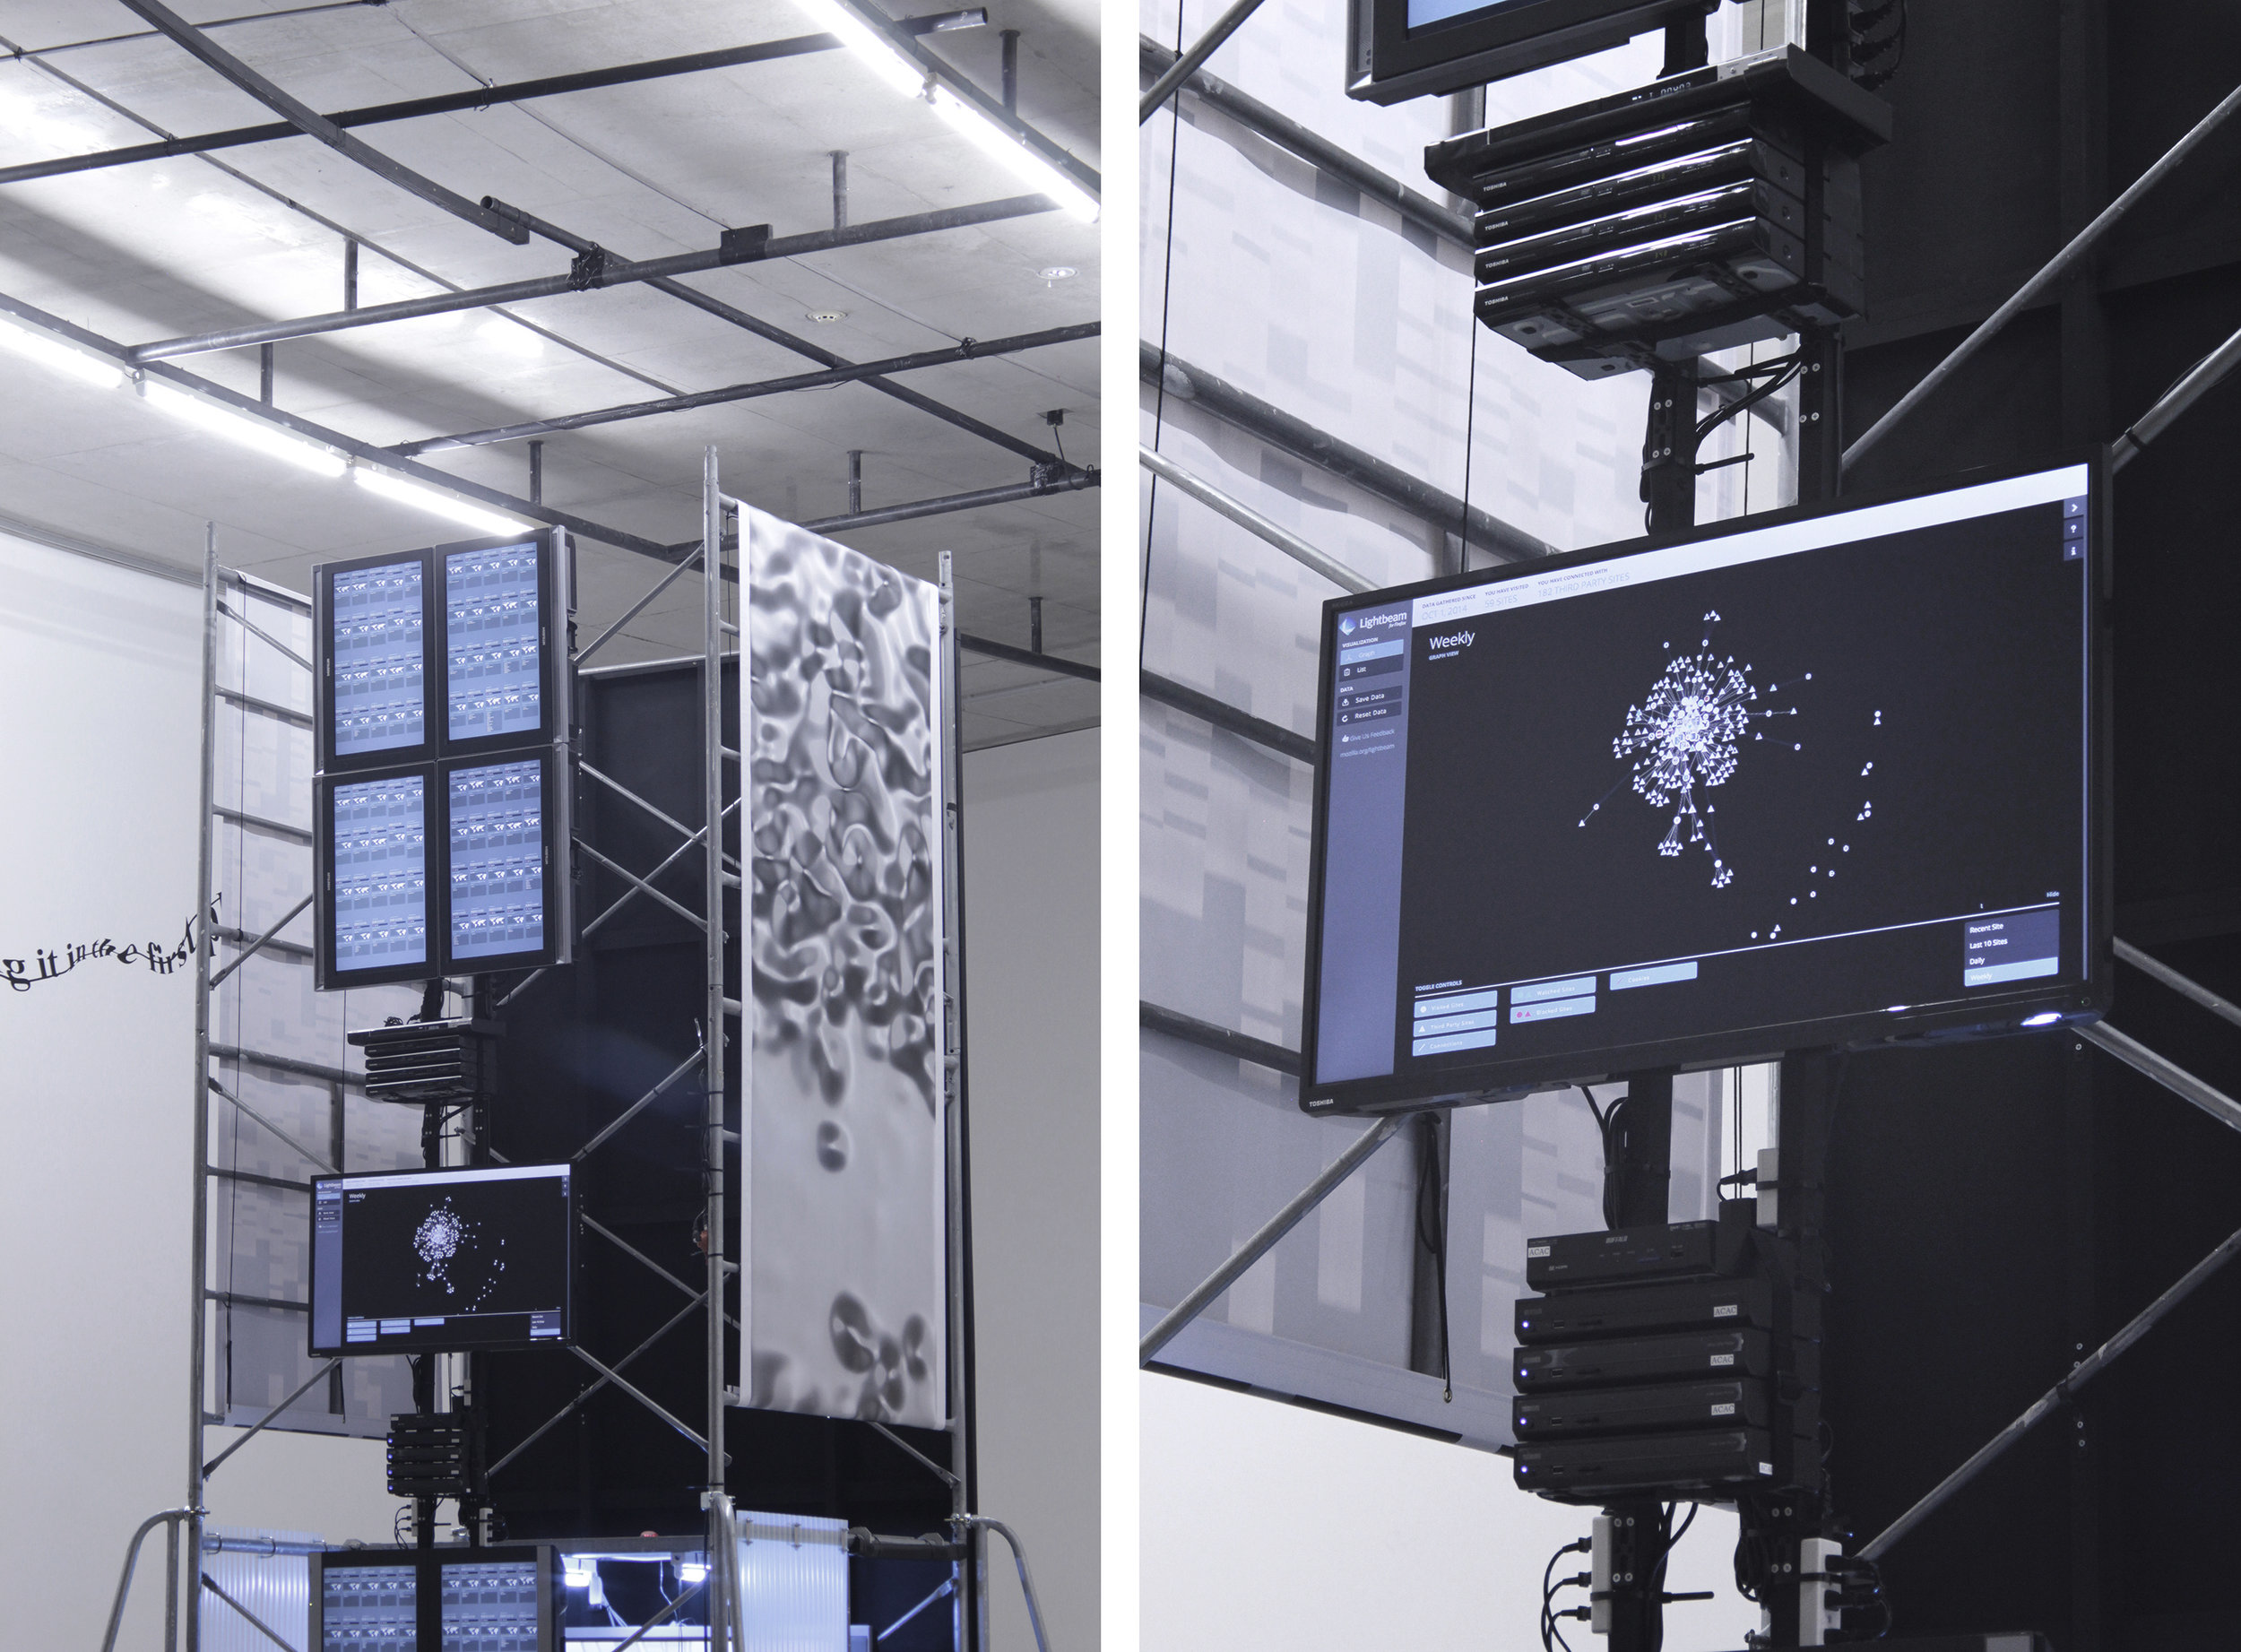 Installation View of  Data Centre  with Screens Displaying  Lightbeam